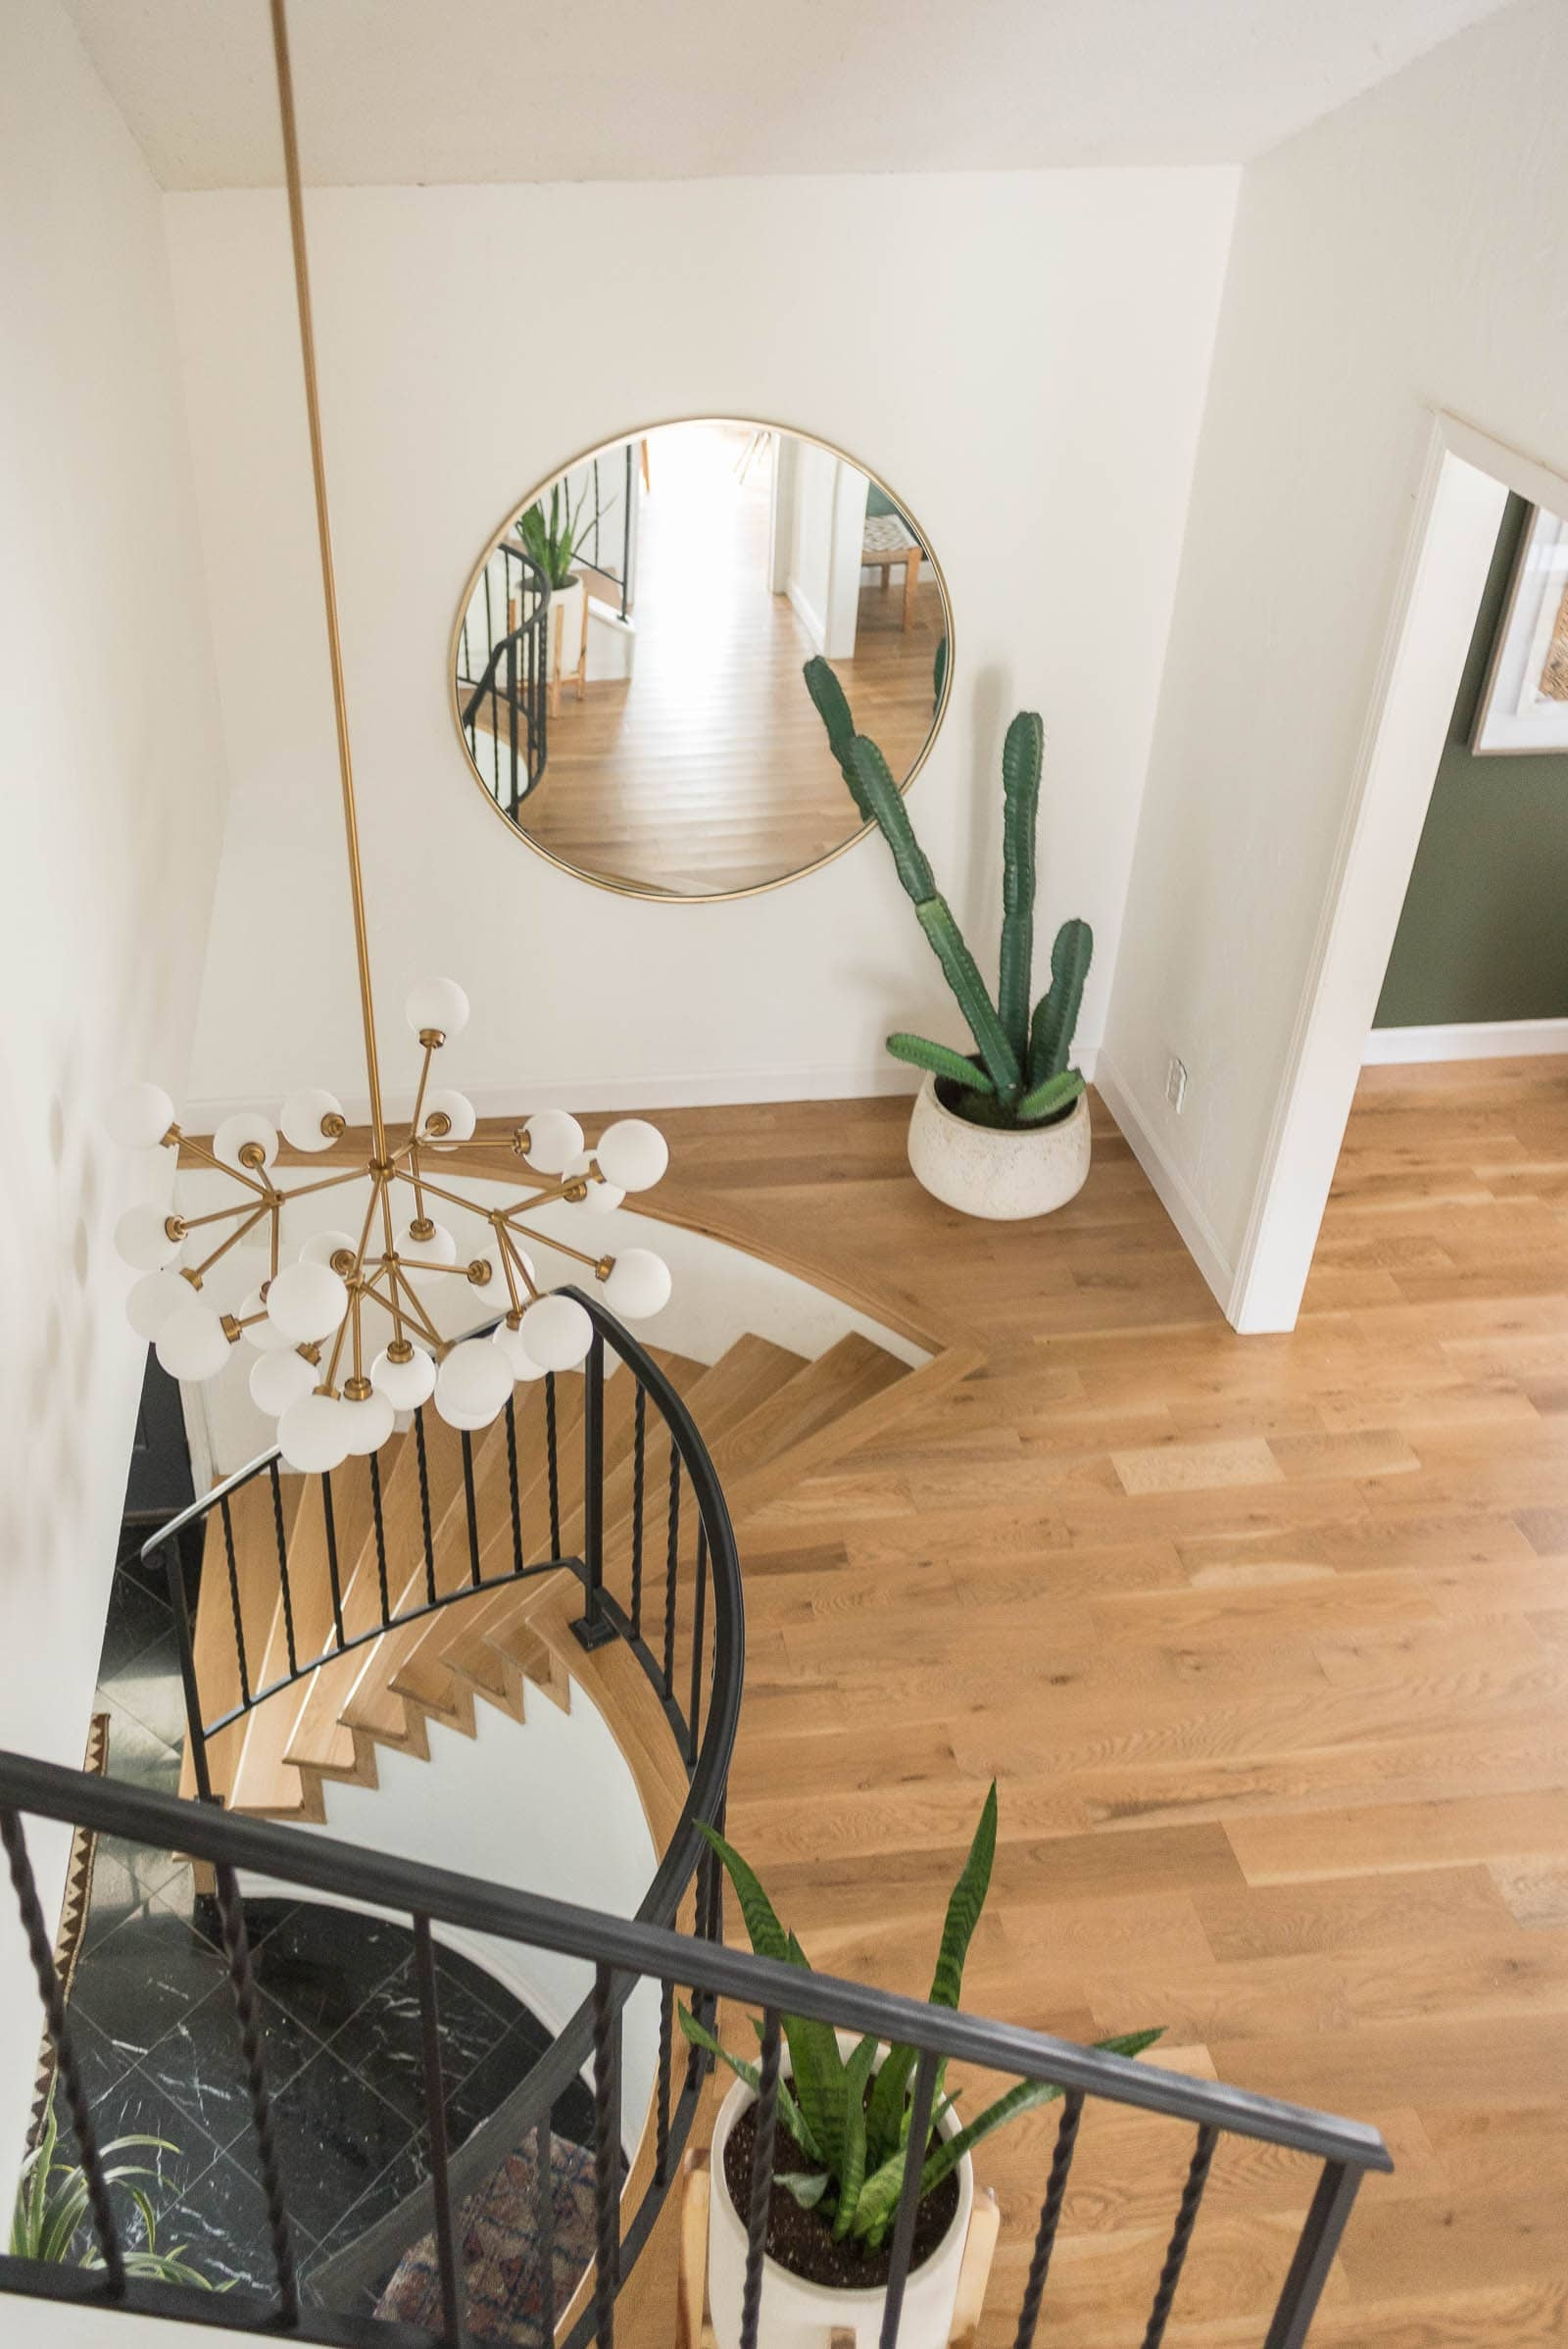 Stair Railing Idea Update Wrought Iron Handrails Bigger Than | Wood And Rod Iron Railing | Wooden | Dark Stained | Wrought Iron | Pipe | Simple Modern